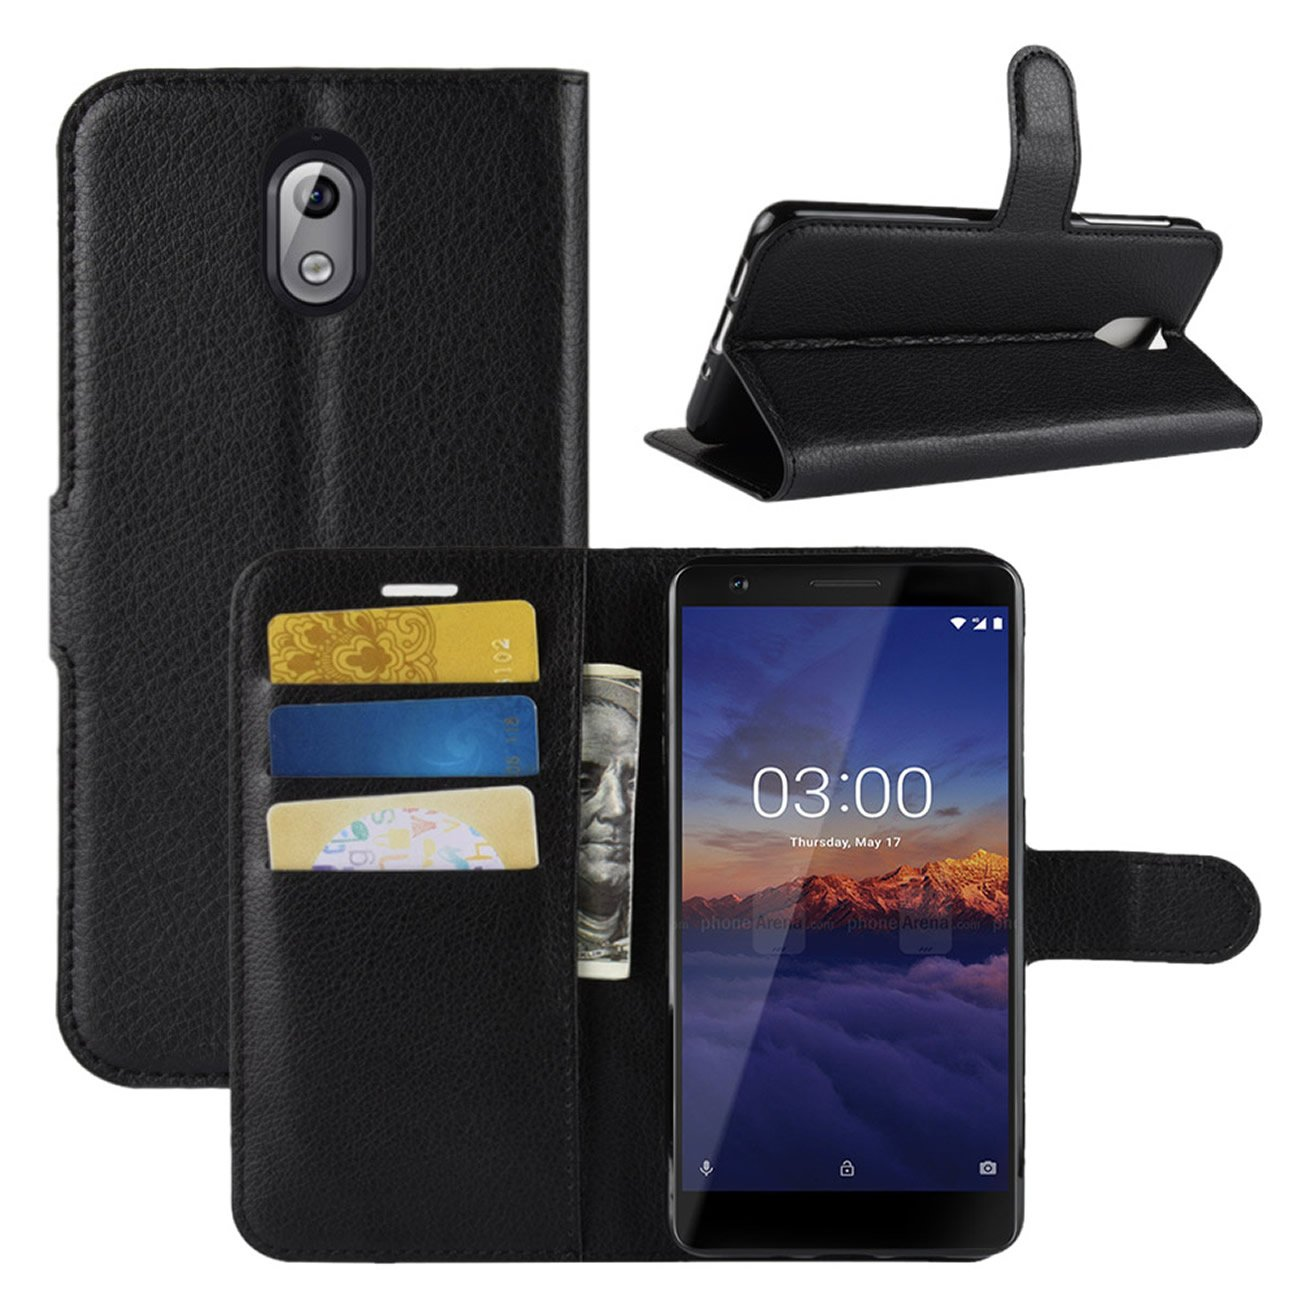 ac1de7acf2 Nokia 3.1 Case, Fettion Premium PU Leather Wallet Flip Phone Protective  Case Cover with Card Slots and Magnetic Closure for Nokia 3.1 Smartphone  (Black)